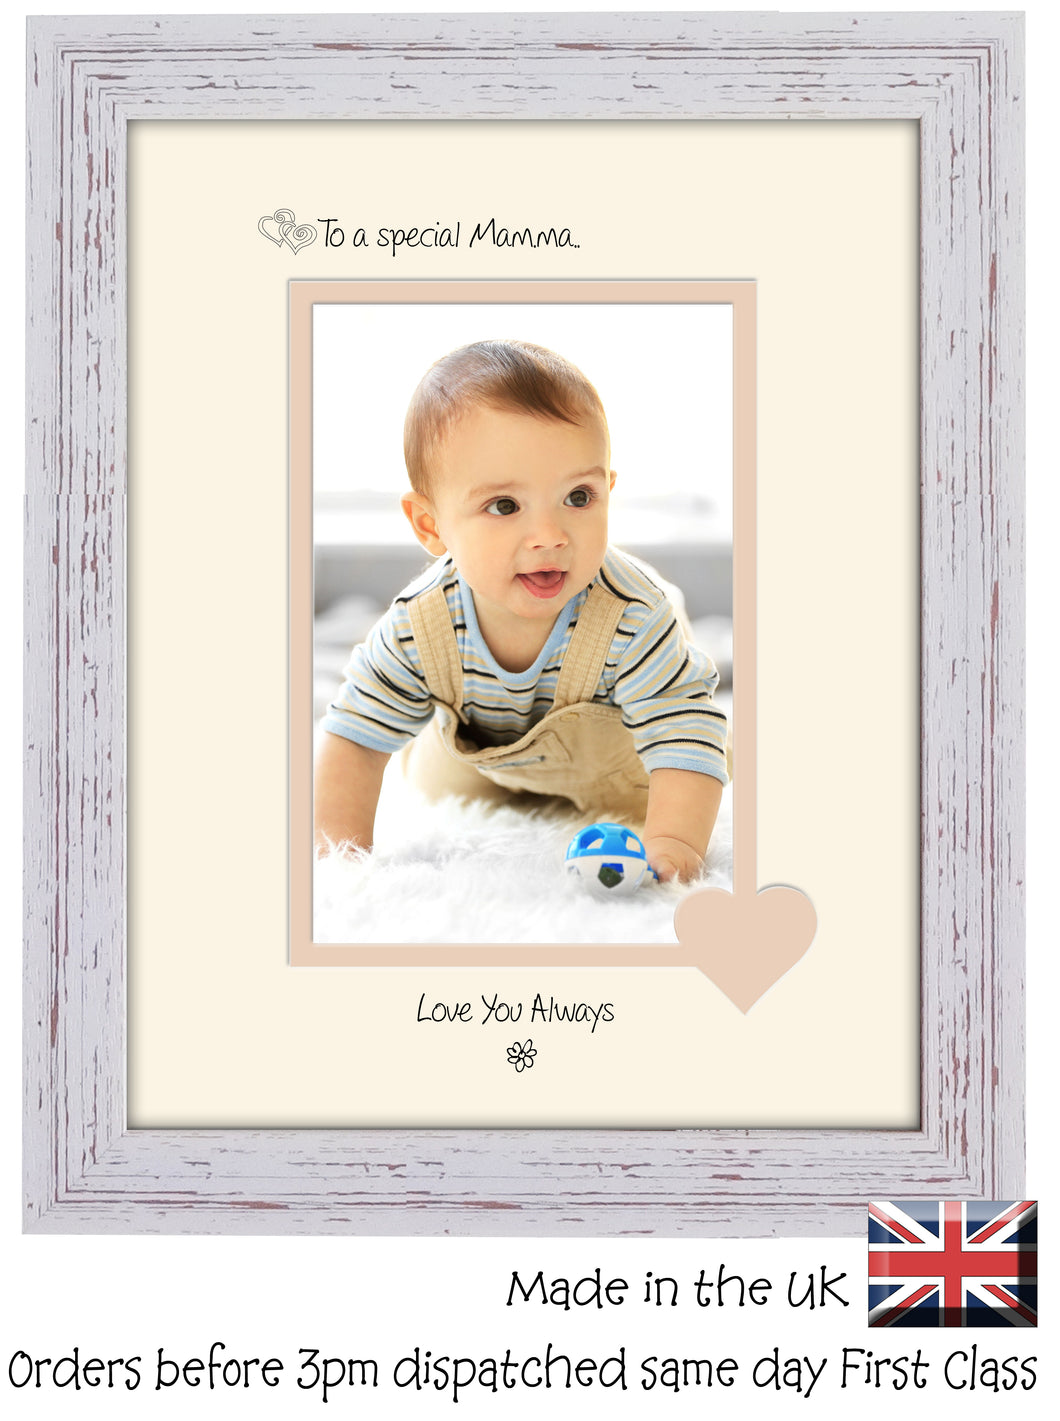 Mamma Photo Frame - To a Special Mamma... Love you Always Portrait photo frame 6